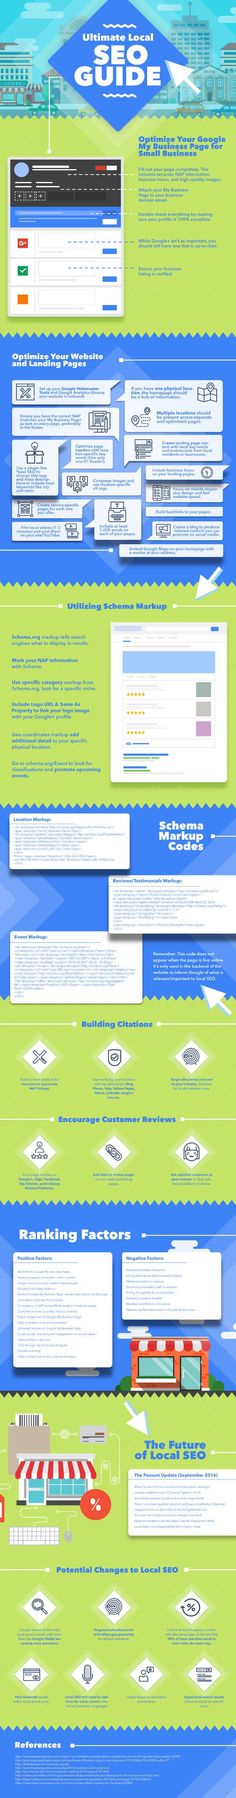 Search Engine Marketing - The Ultimate Local SEO Guide [Infographic] : MarketingProfs Article